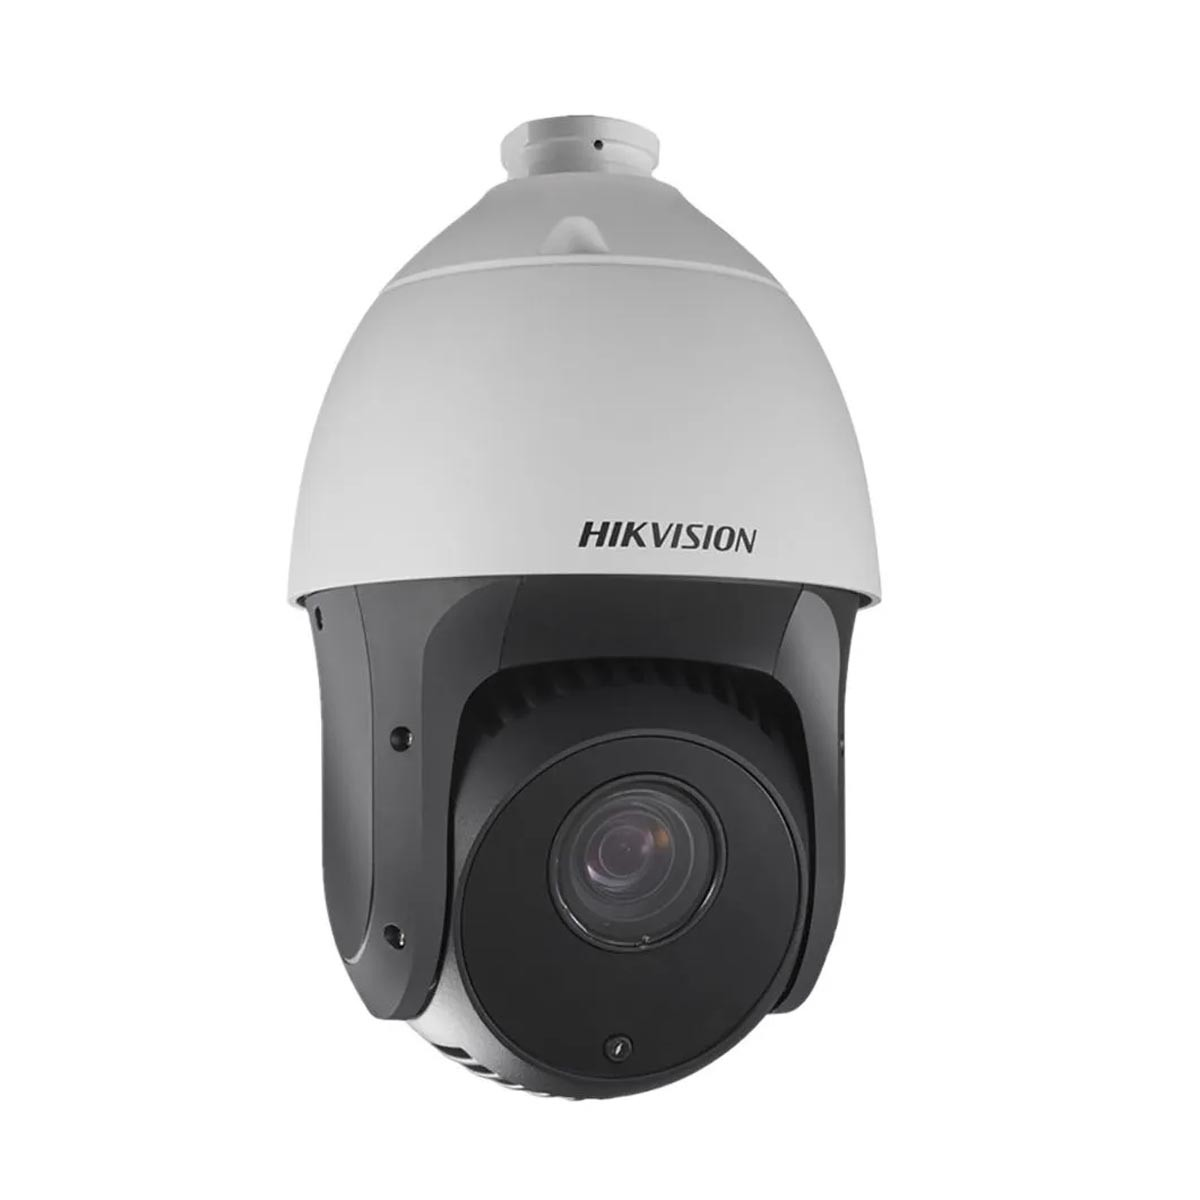 CÂMERA SPEED DOME IP HIKVISION 100 MTS 2MP 25X ZOOM OPTICO 16X ZOOM DIGITAL DS-2DE4225IW-DE